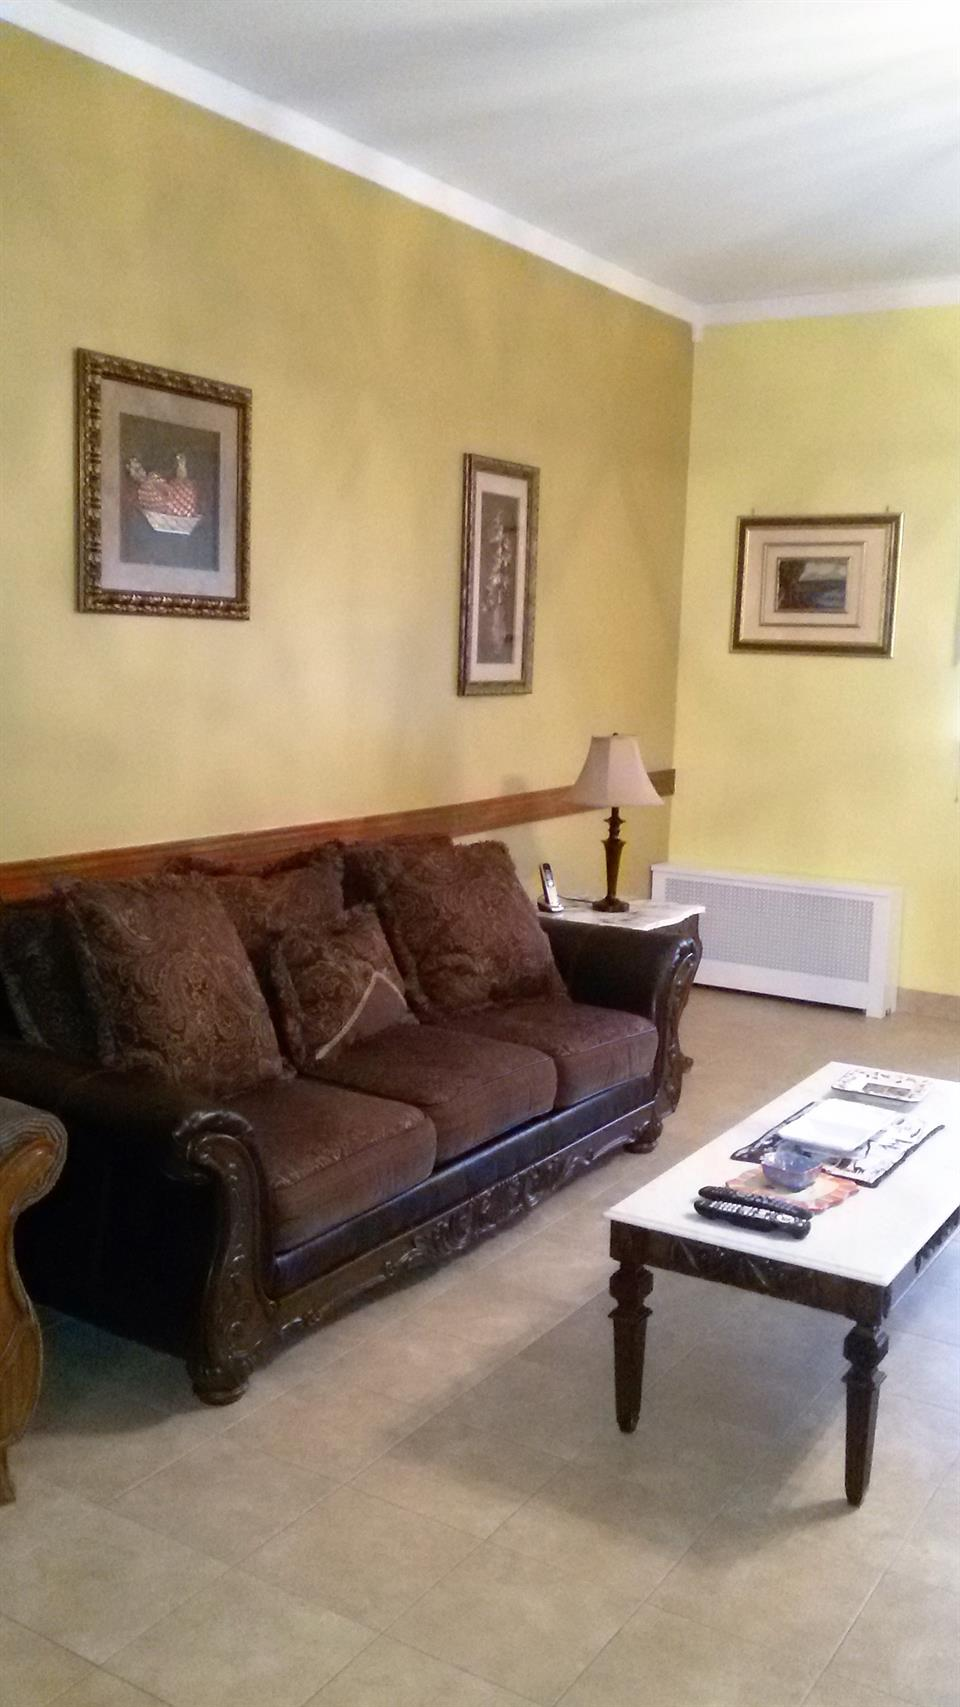 Additional photo for property listing at 7614 15th Avenue  Brooklyn, New York 11228 United States